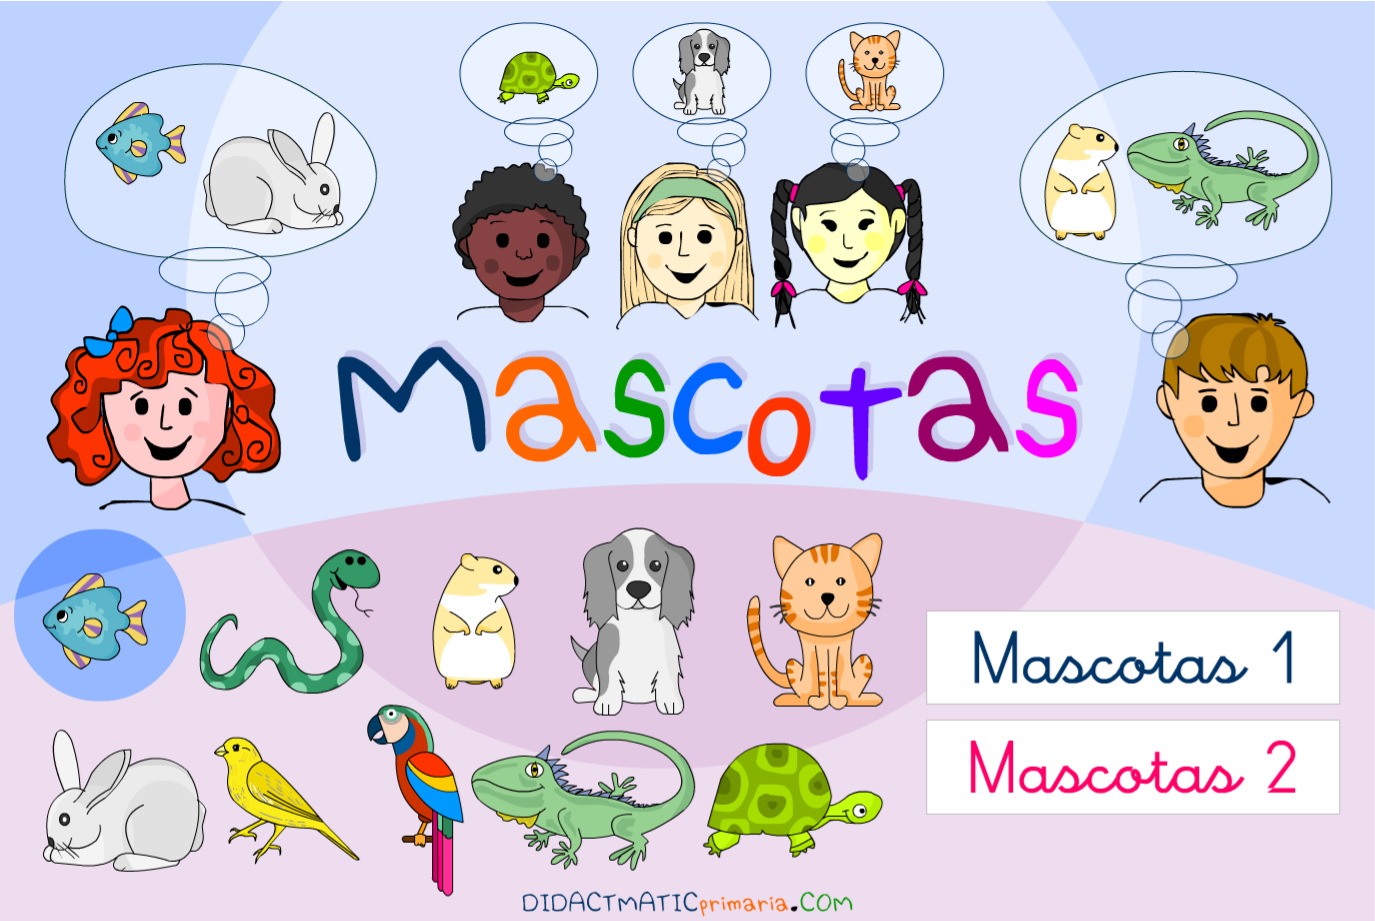 Mascotas